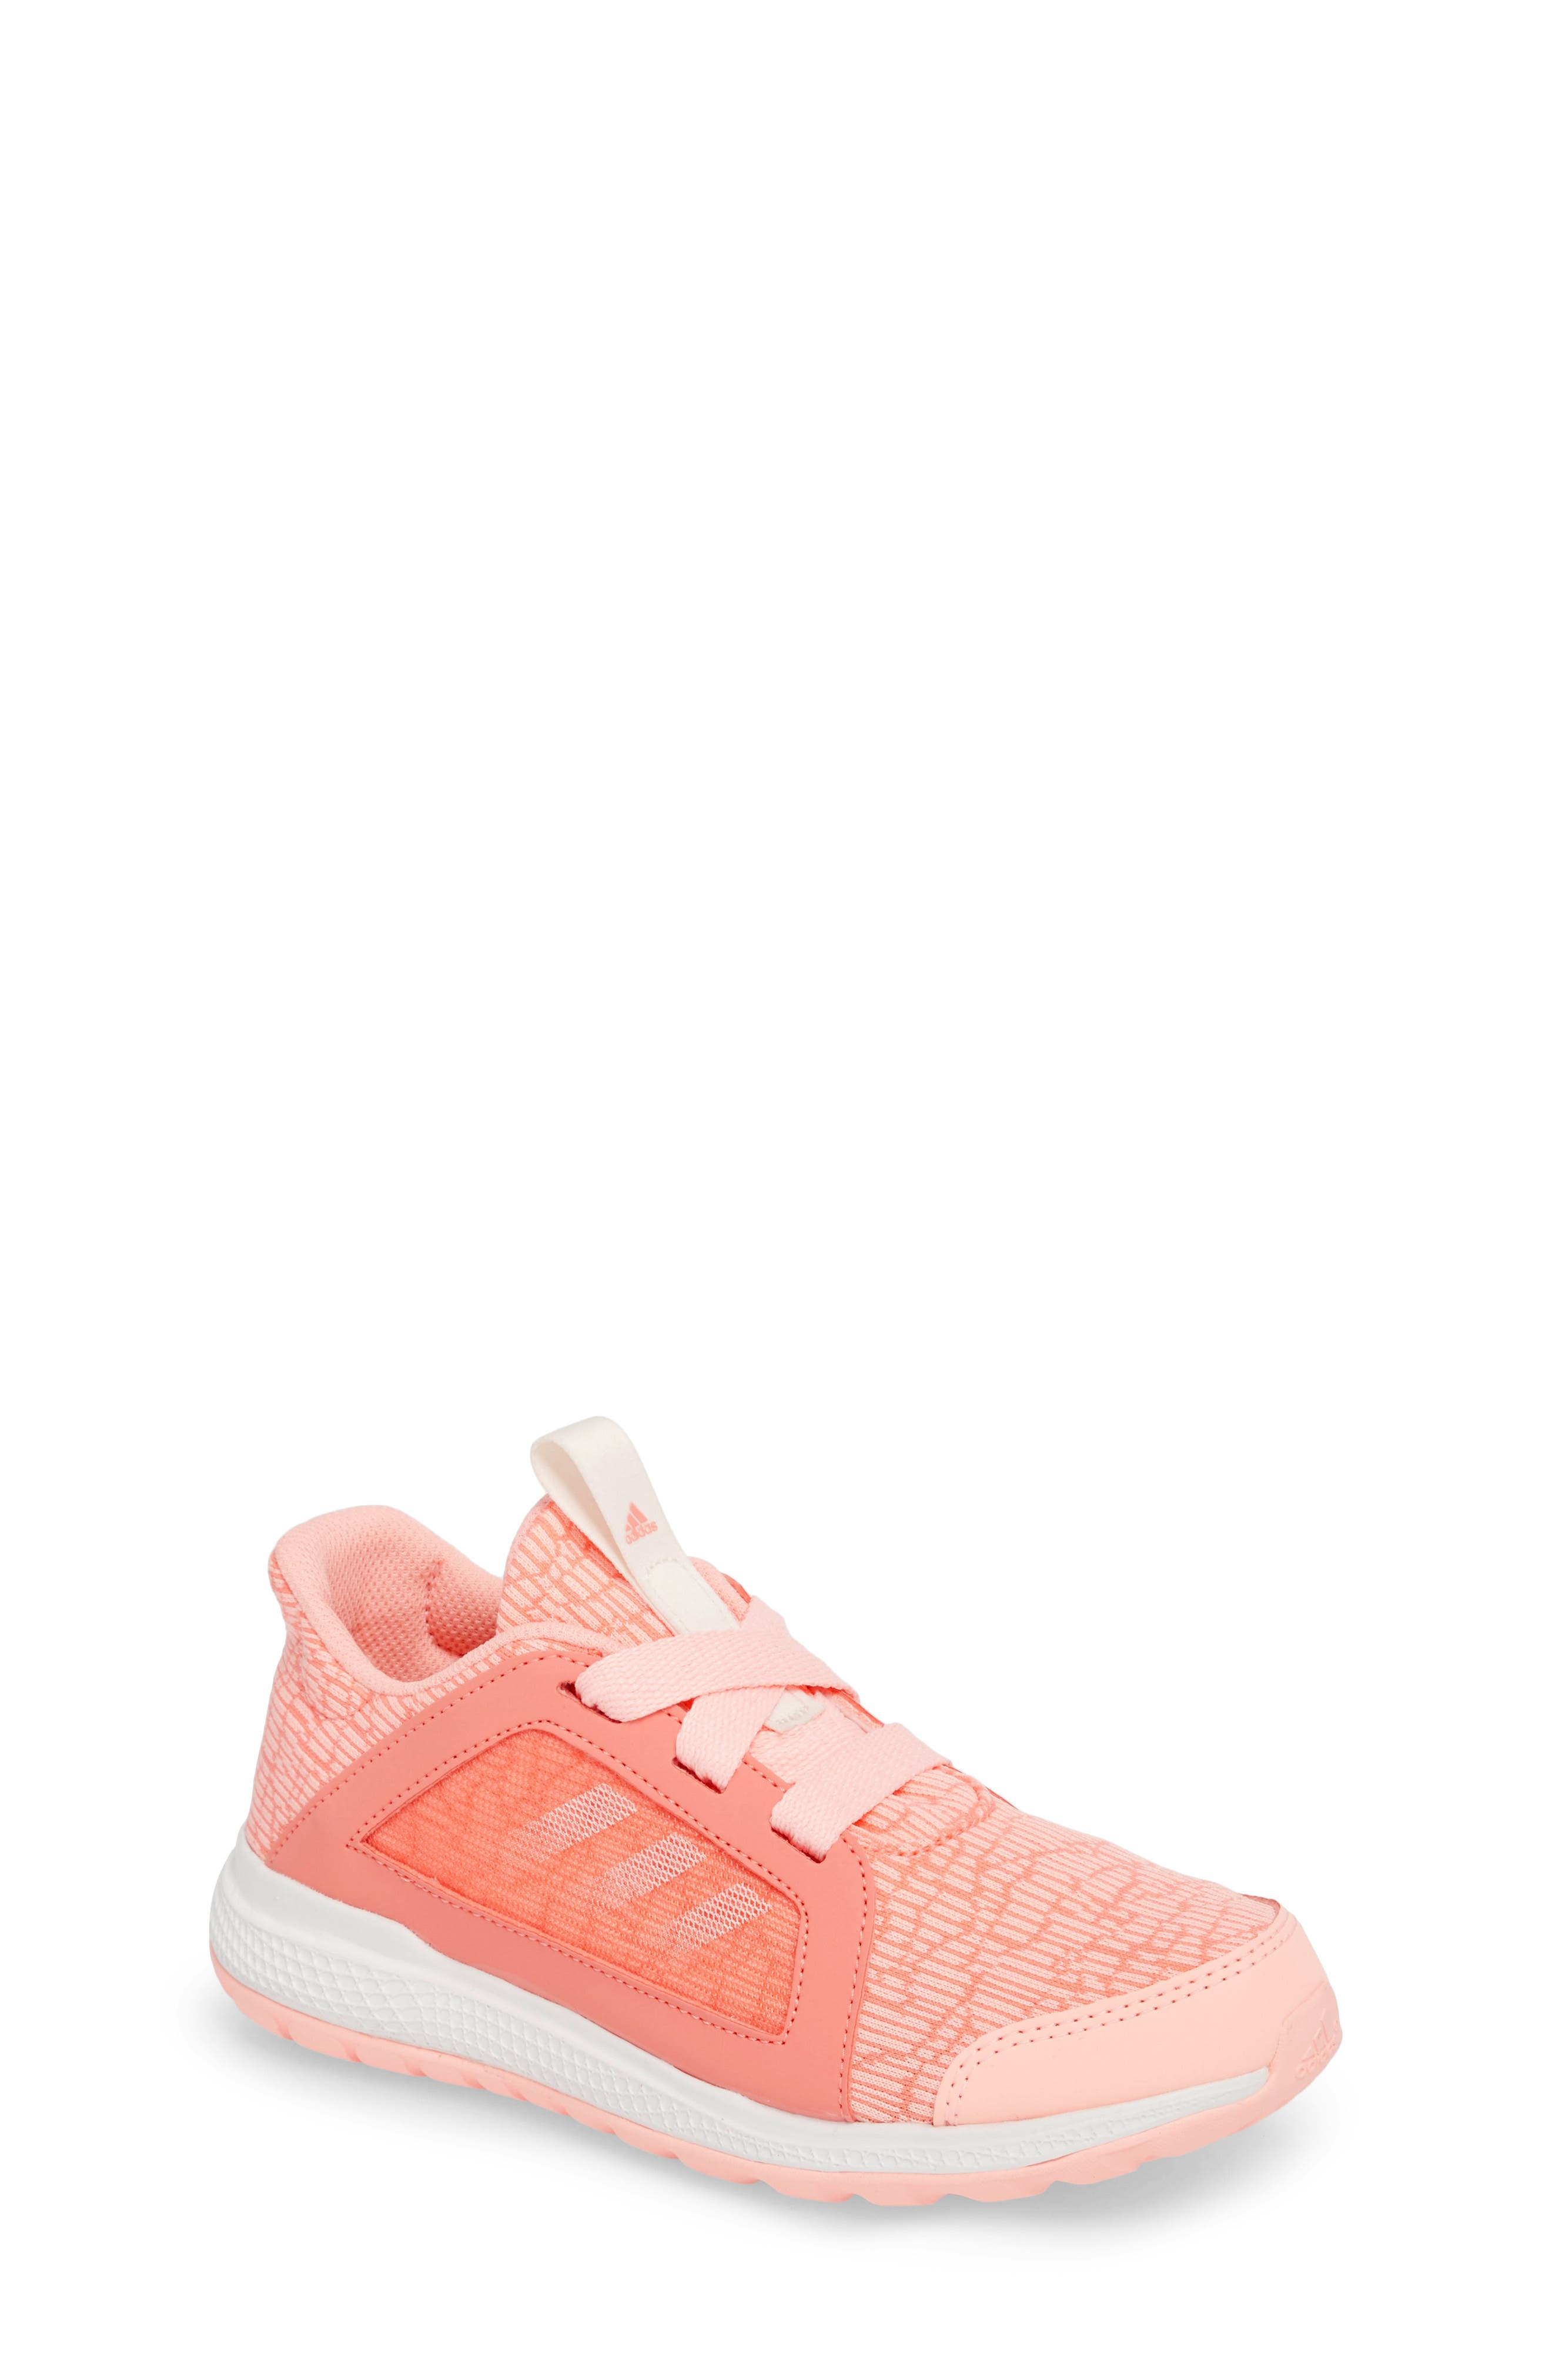 Edge Lux Running Shoe,                             Main thumbnail 1, color,                             Chalk Coral/ White/ Orange